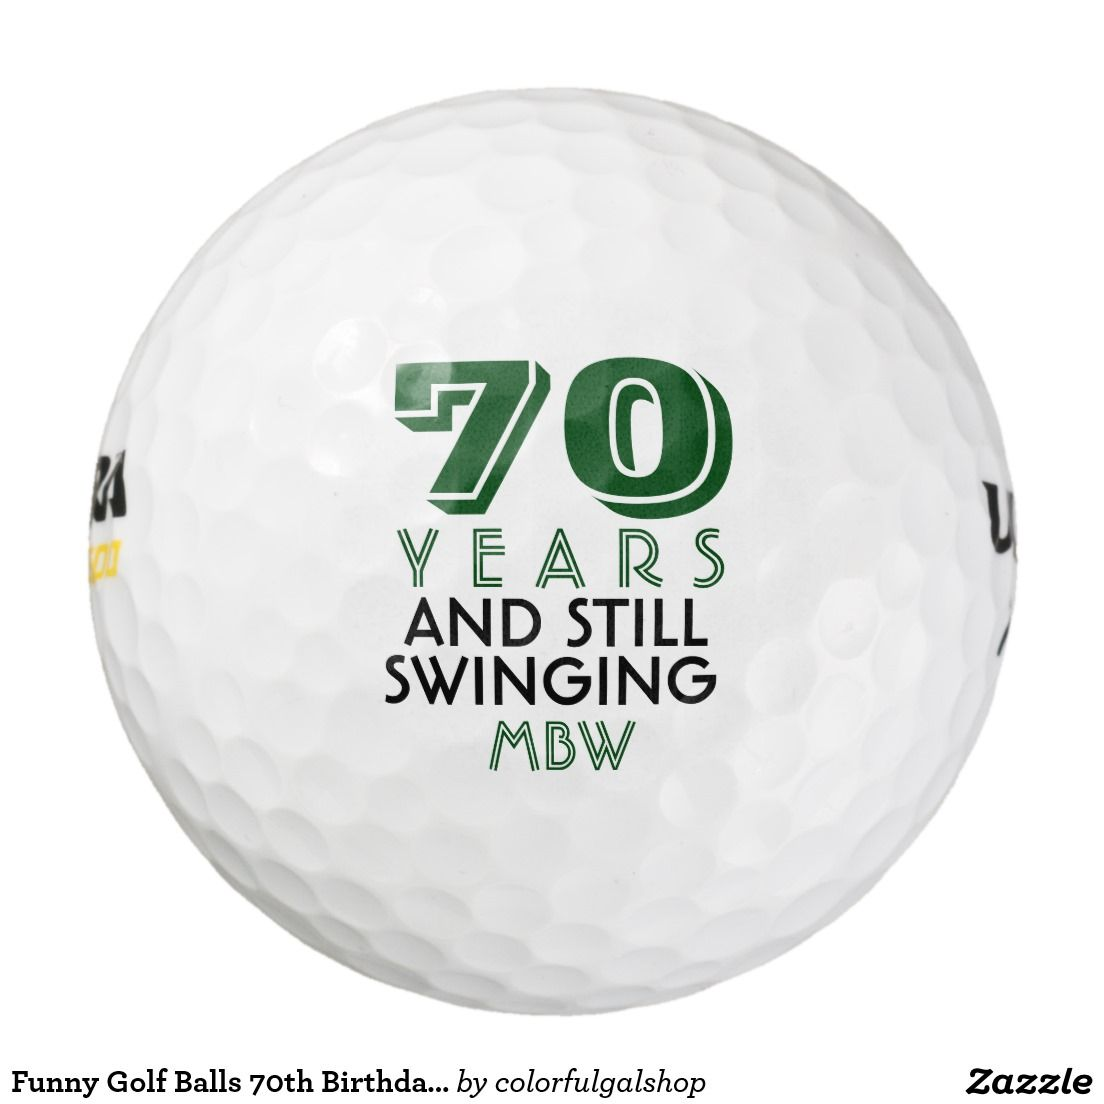 Funny Golf Balls 70th Birthday Party Monogrammed Zazzling Friends